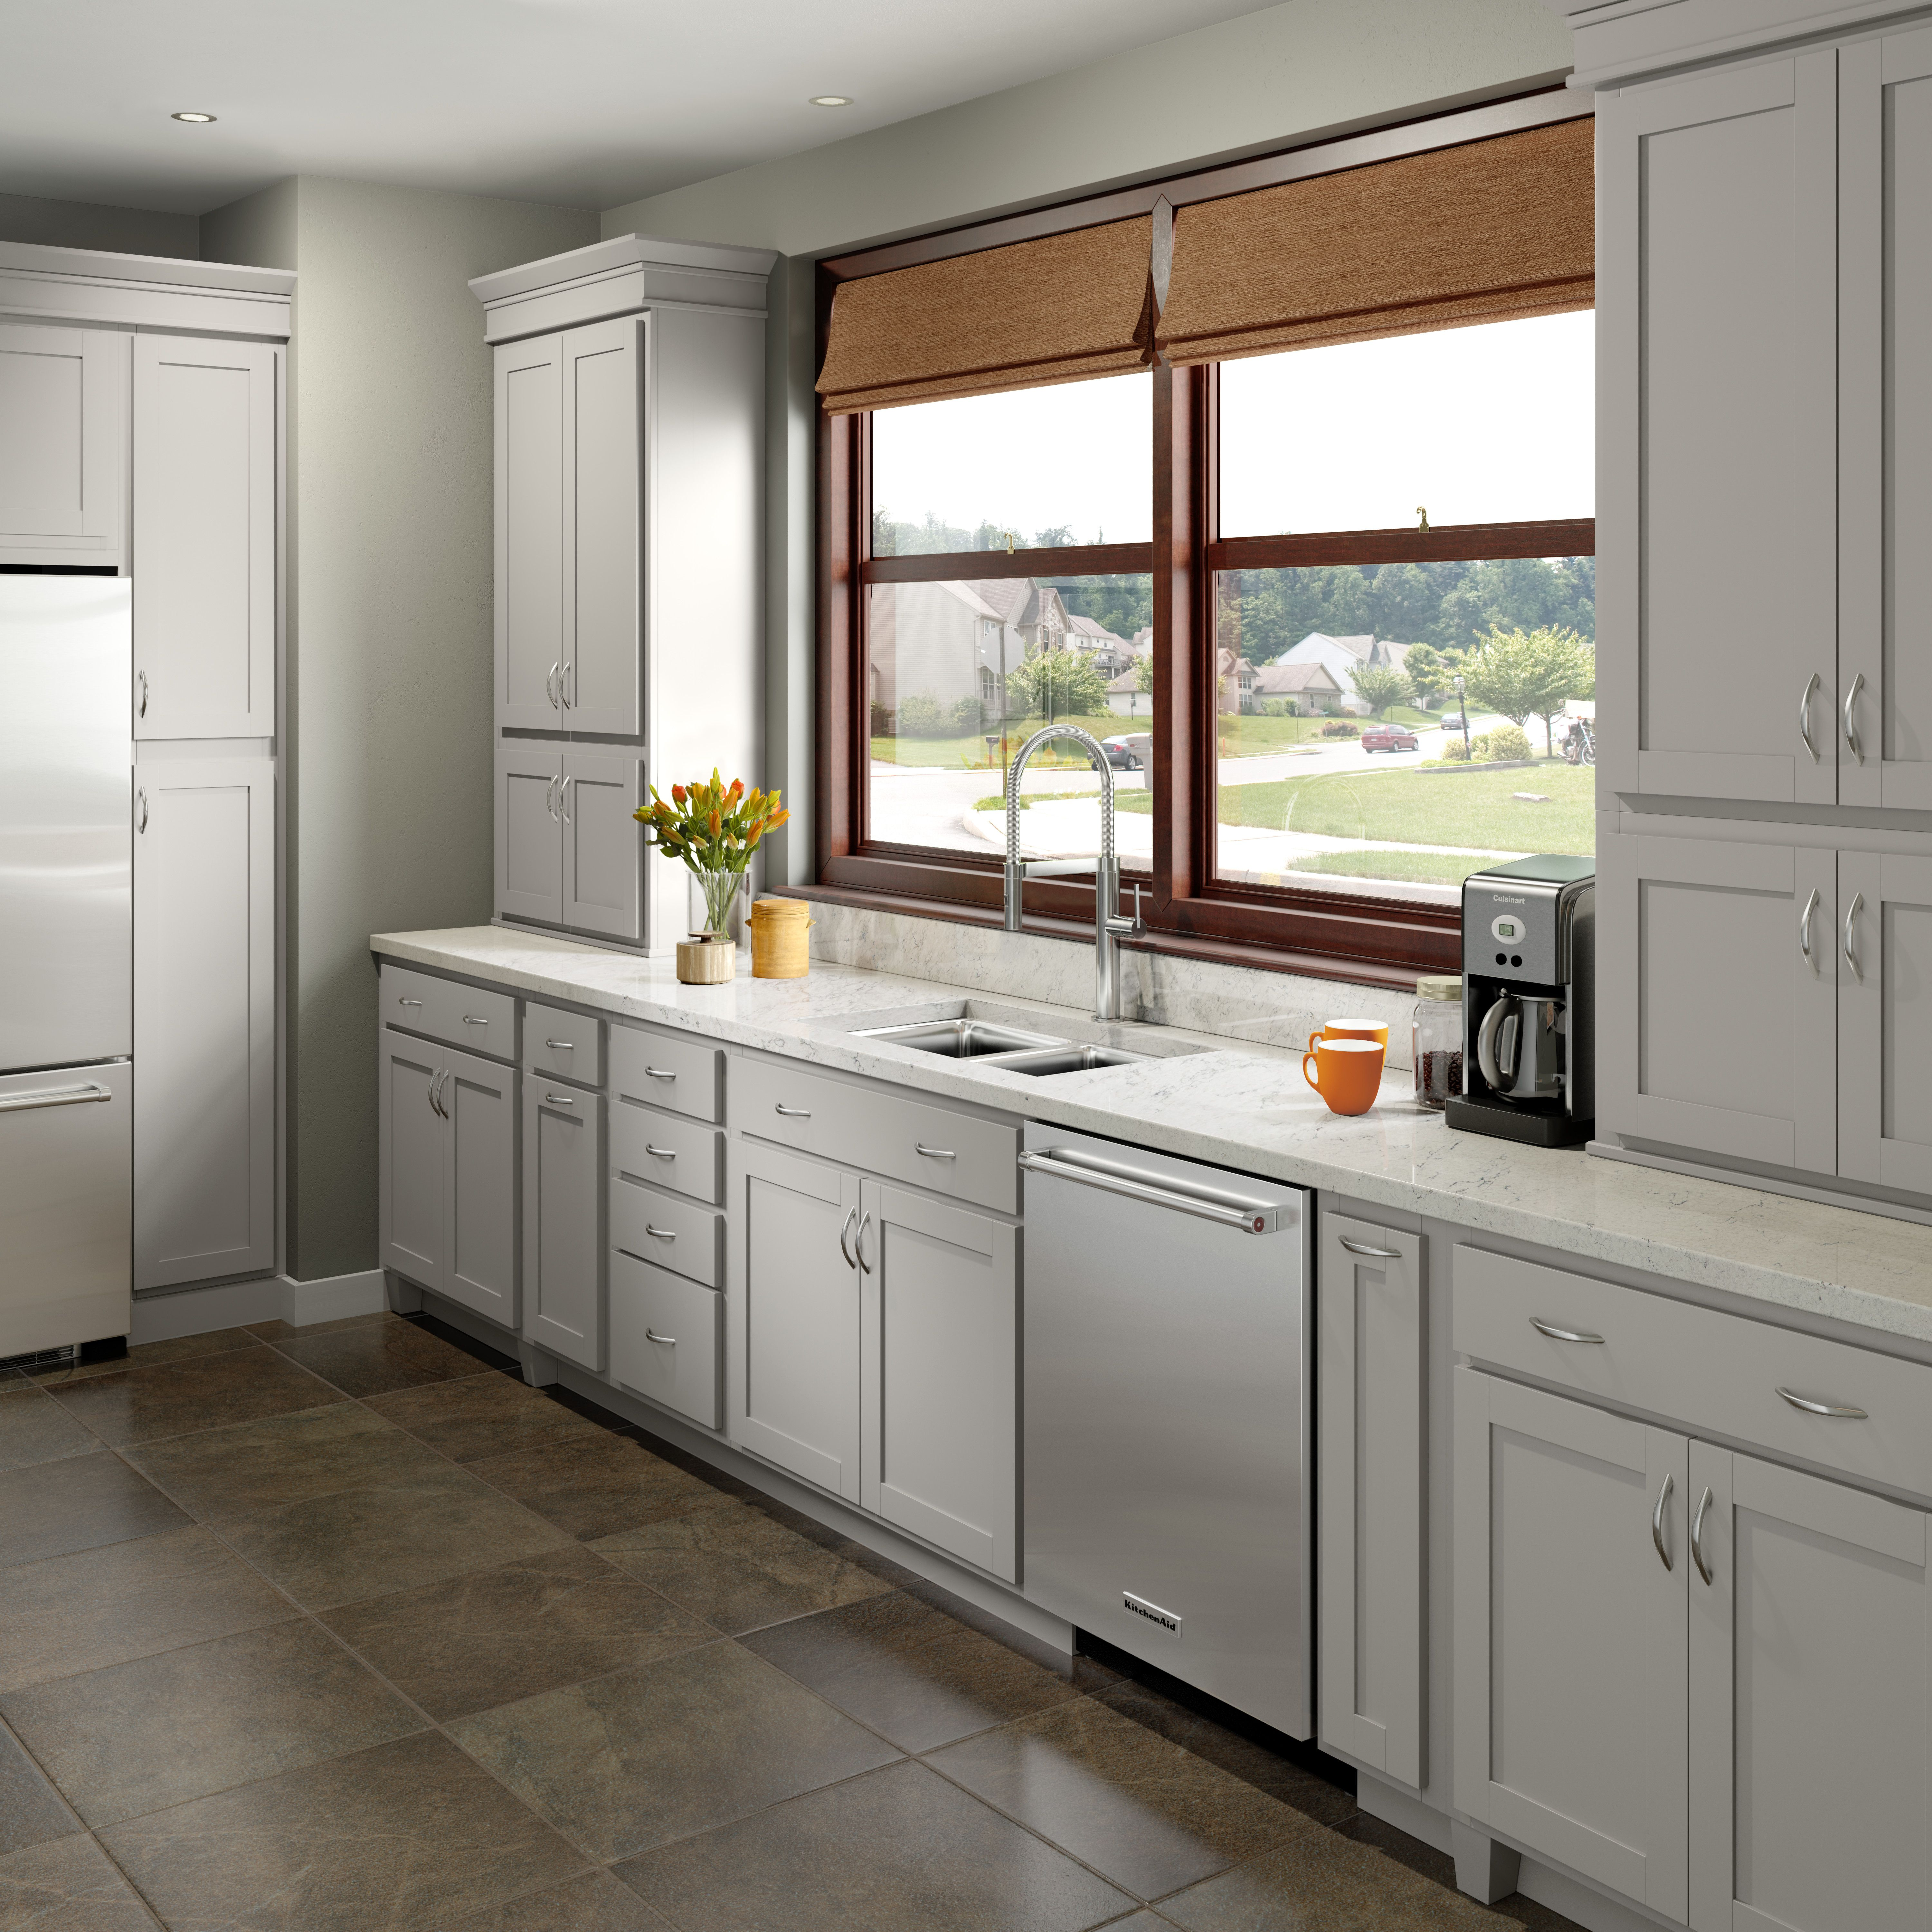 Kitchen Cabinets San Mateo San Mateo Duraform Stone Kitchen Inspiration Pinterest